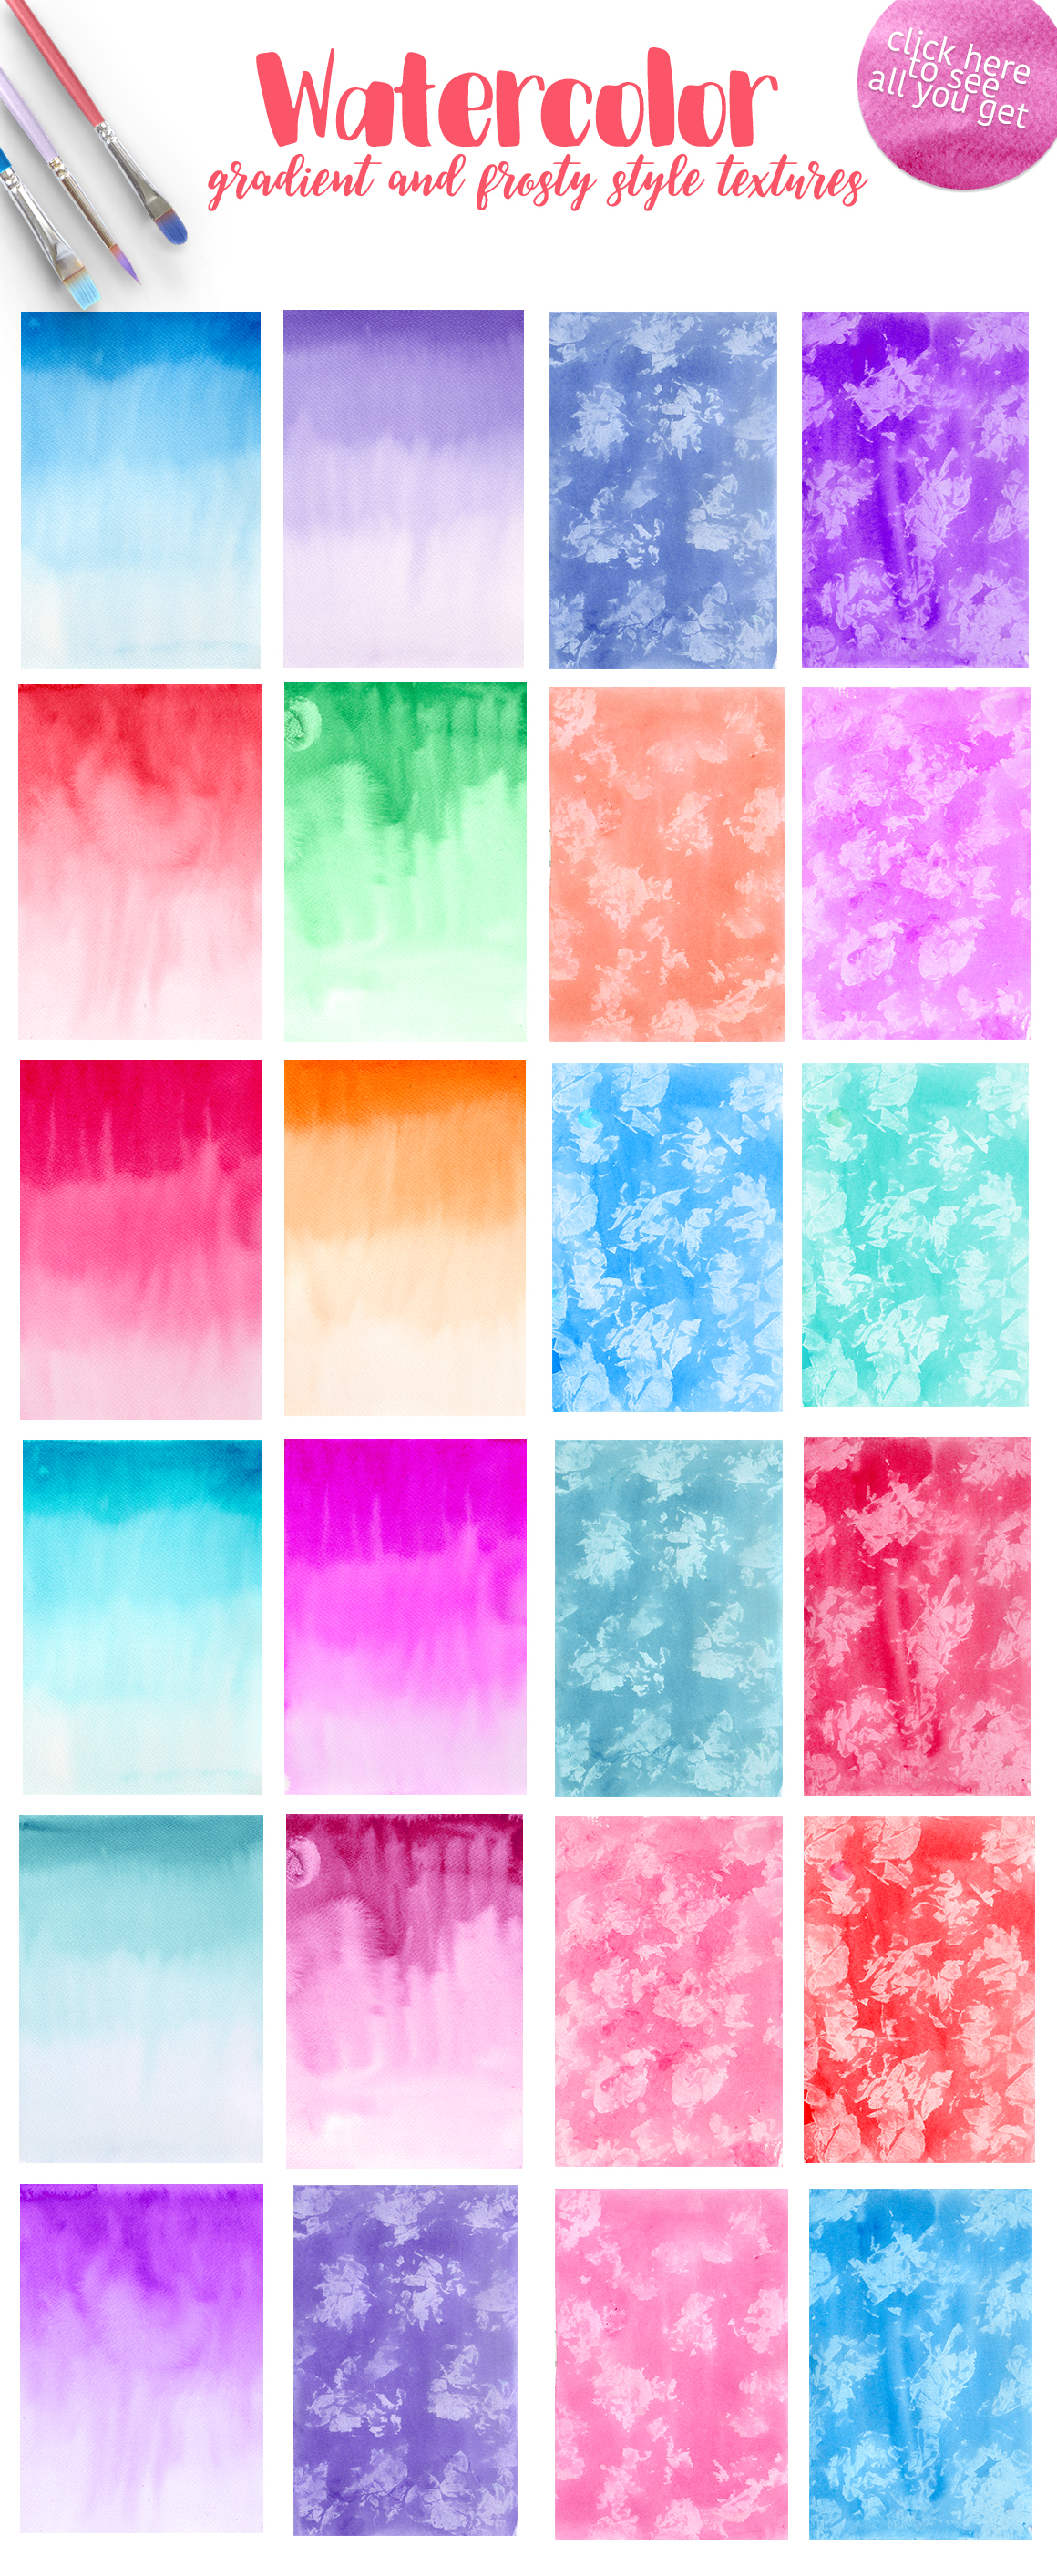 365 Watercolor Dream Textures example image 8